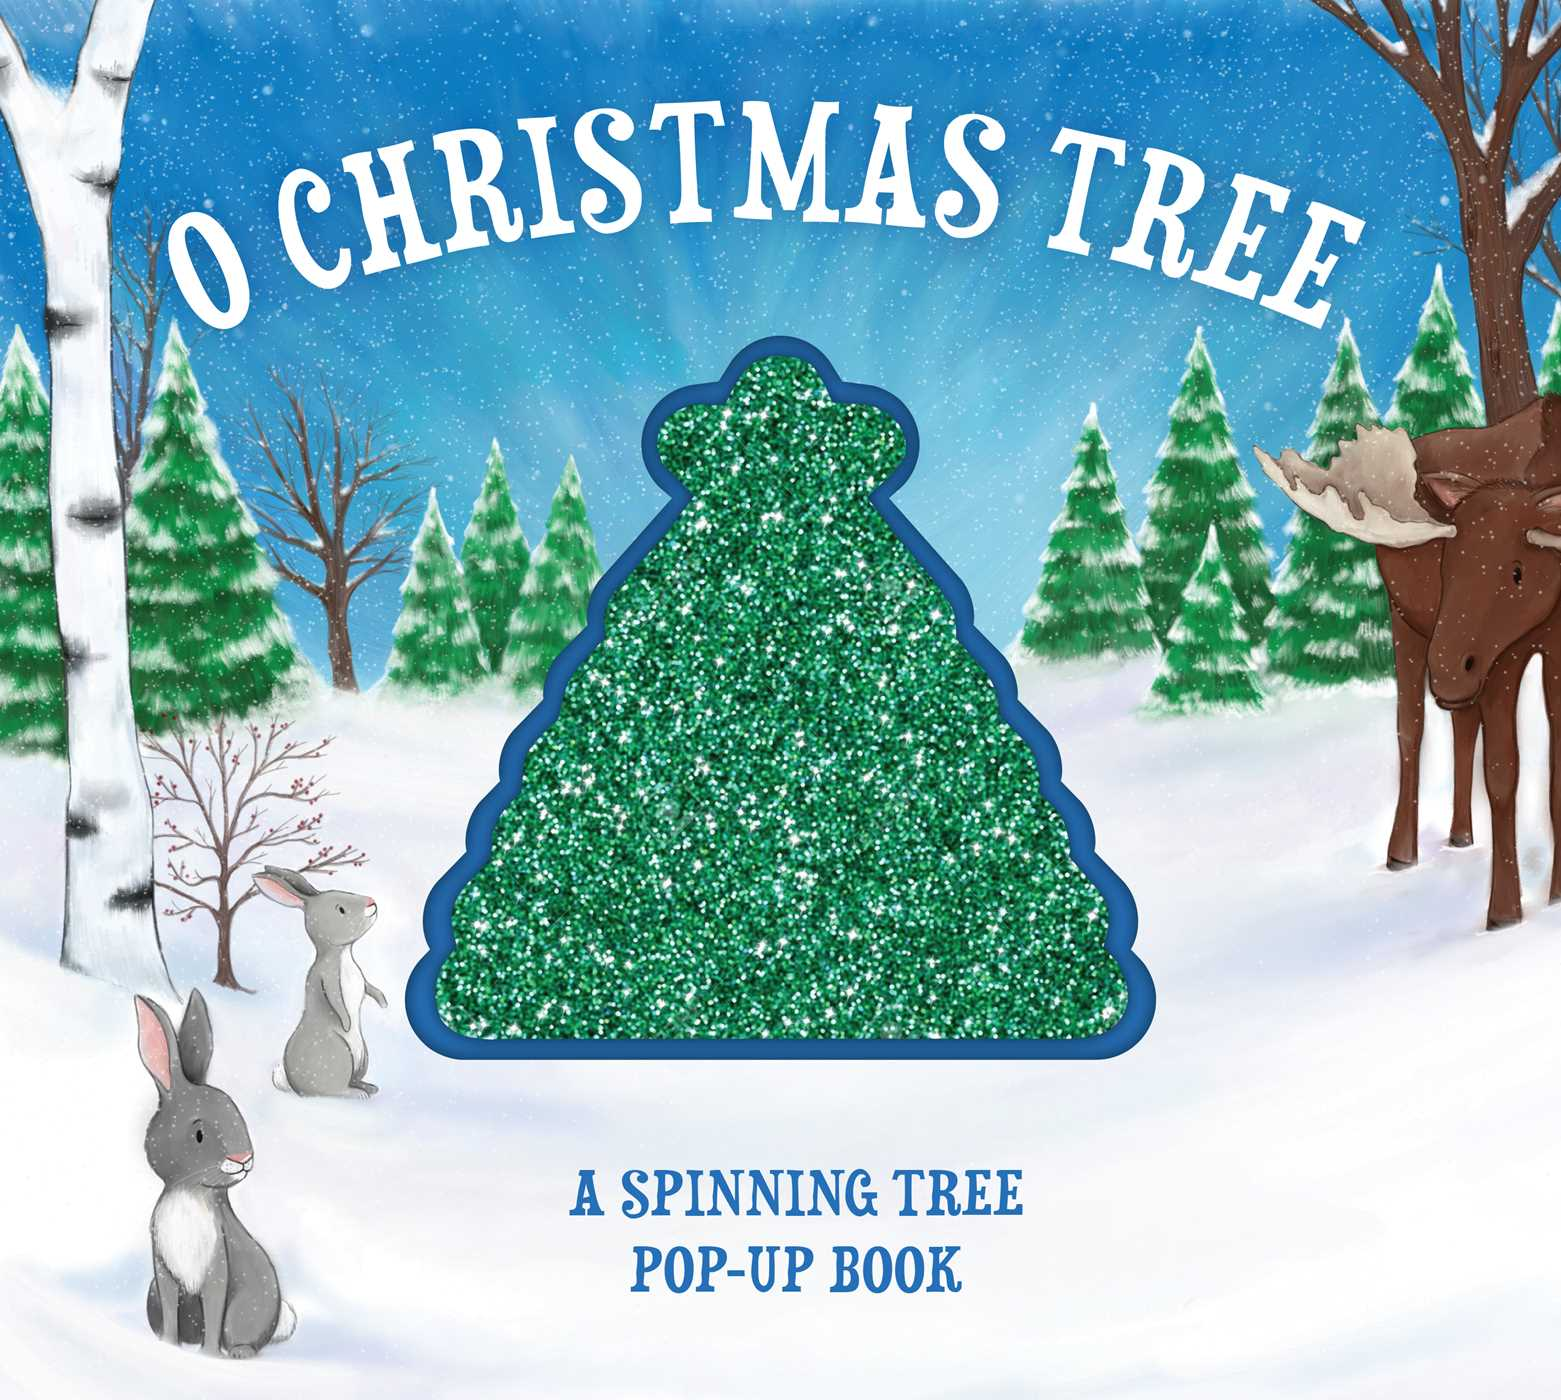 O Christmas Tree | Book by M. Lisa Griffin | Official Publisher Page ...